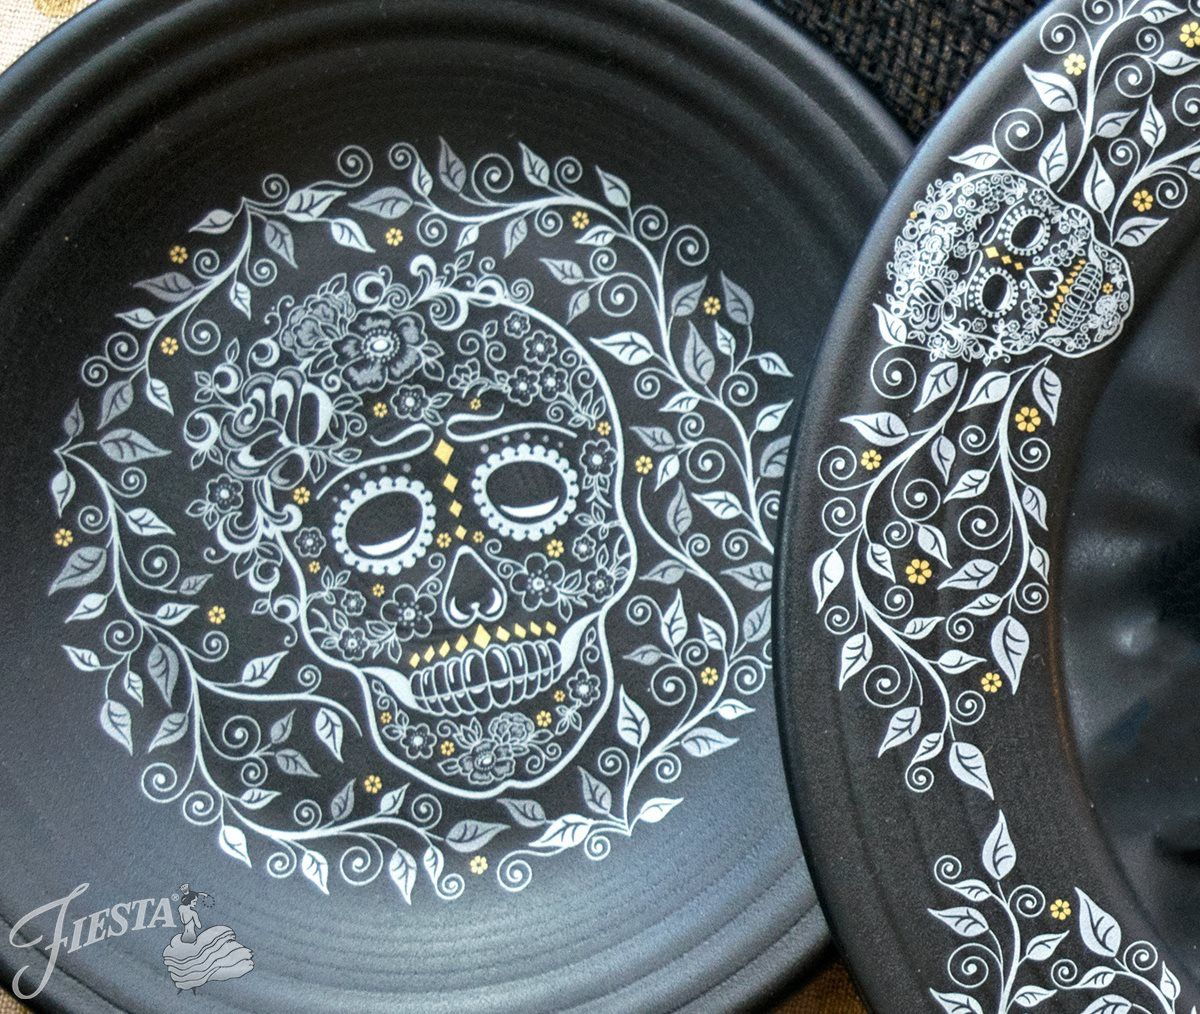 Fiesta® Skull and Vine Dinnerware | Fiesta® / Homer Laughlin China ...